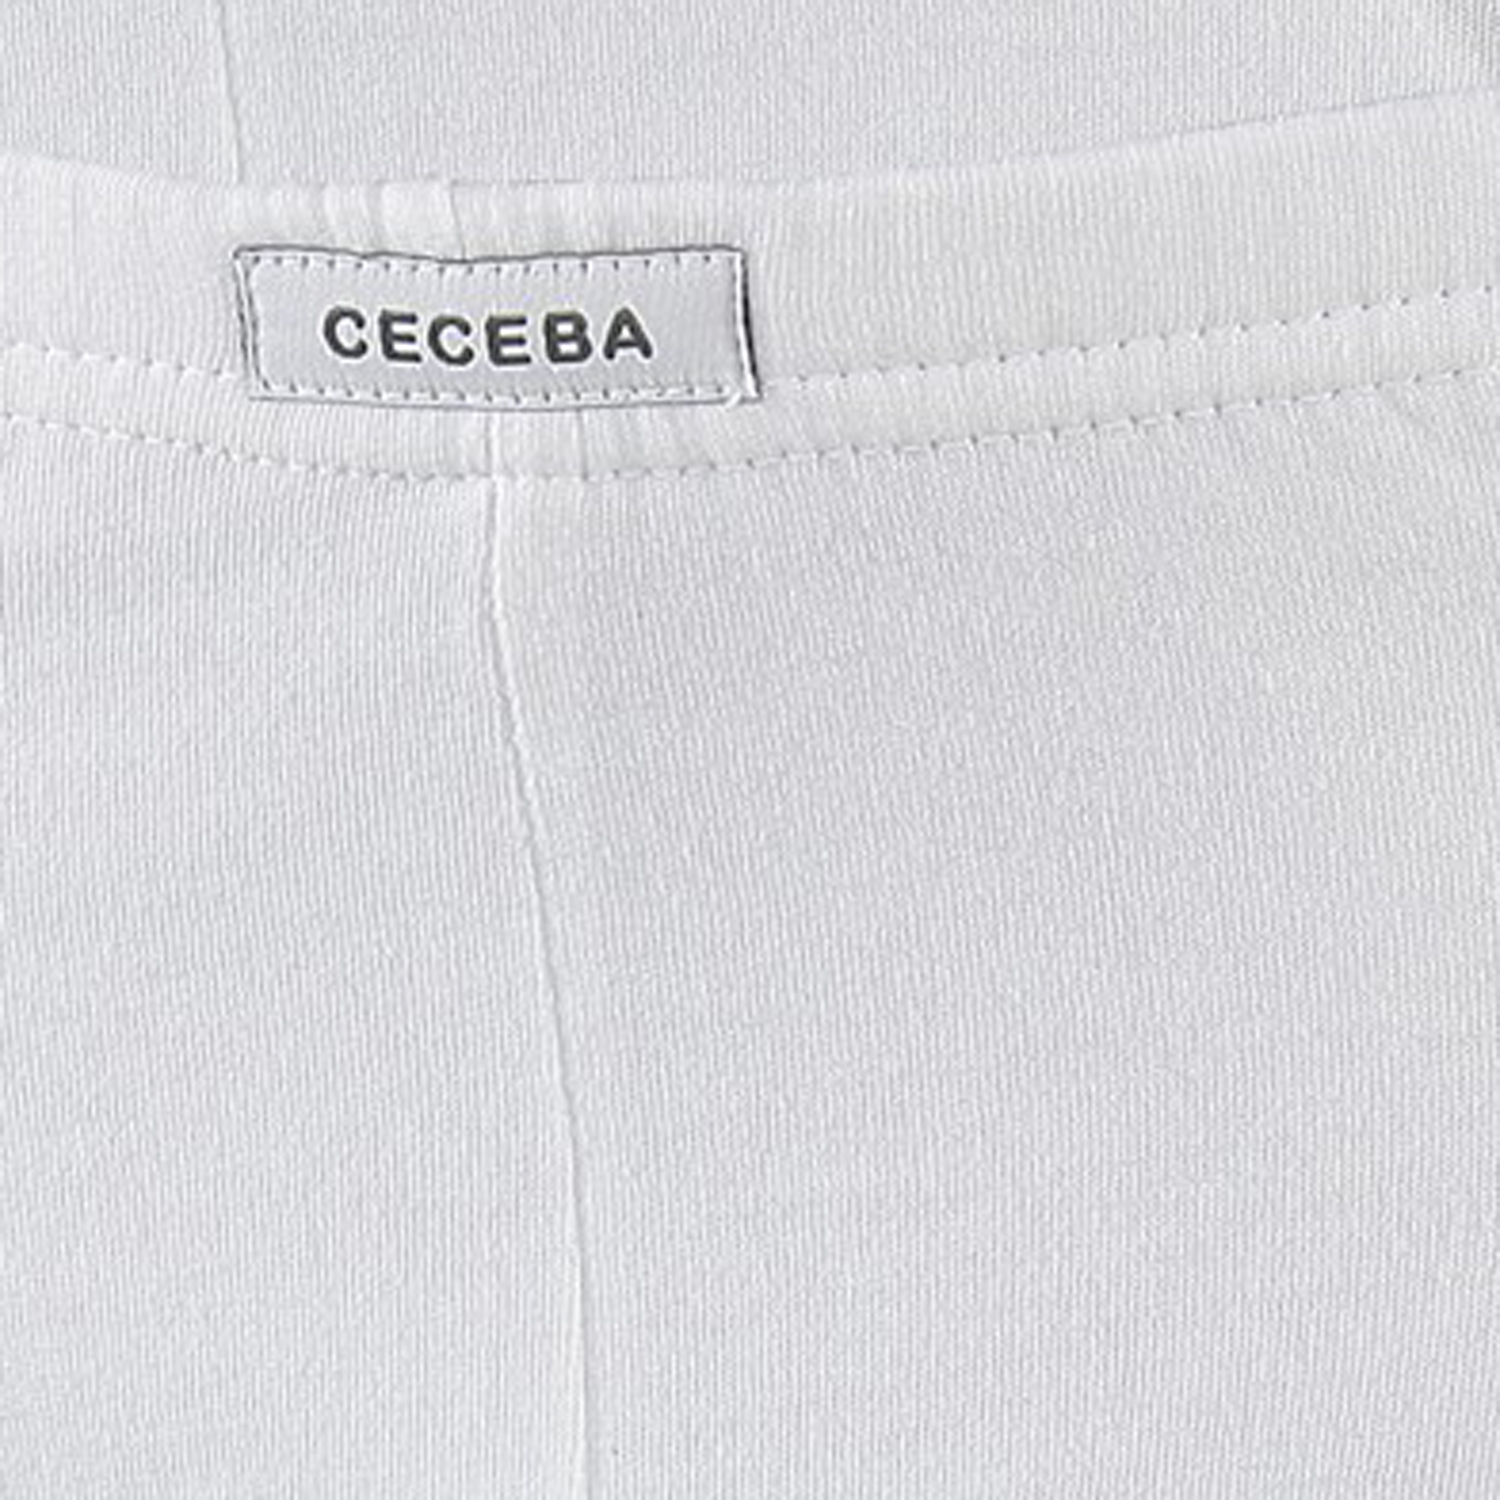 Detail Image to Briefs in white by Ceceba up to oversize 18 / pack of 3